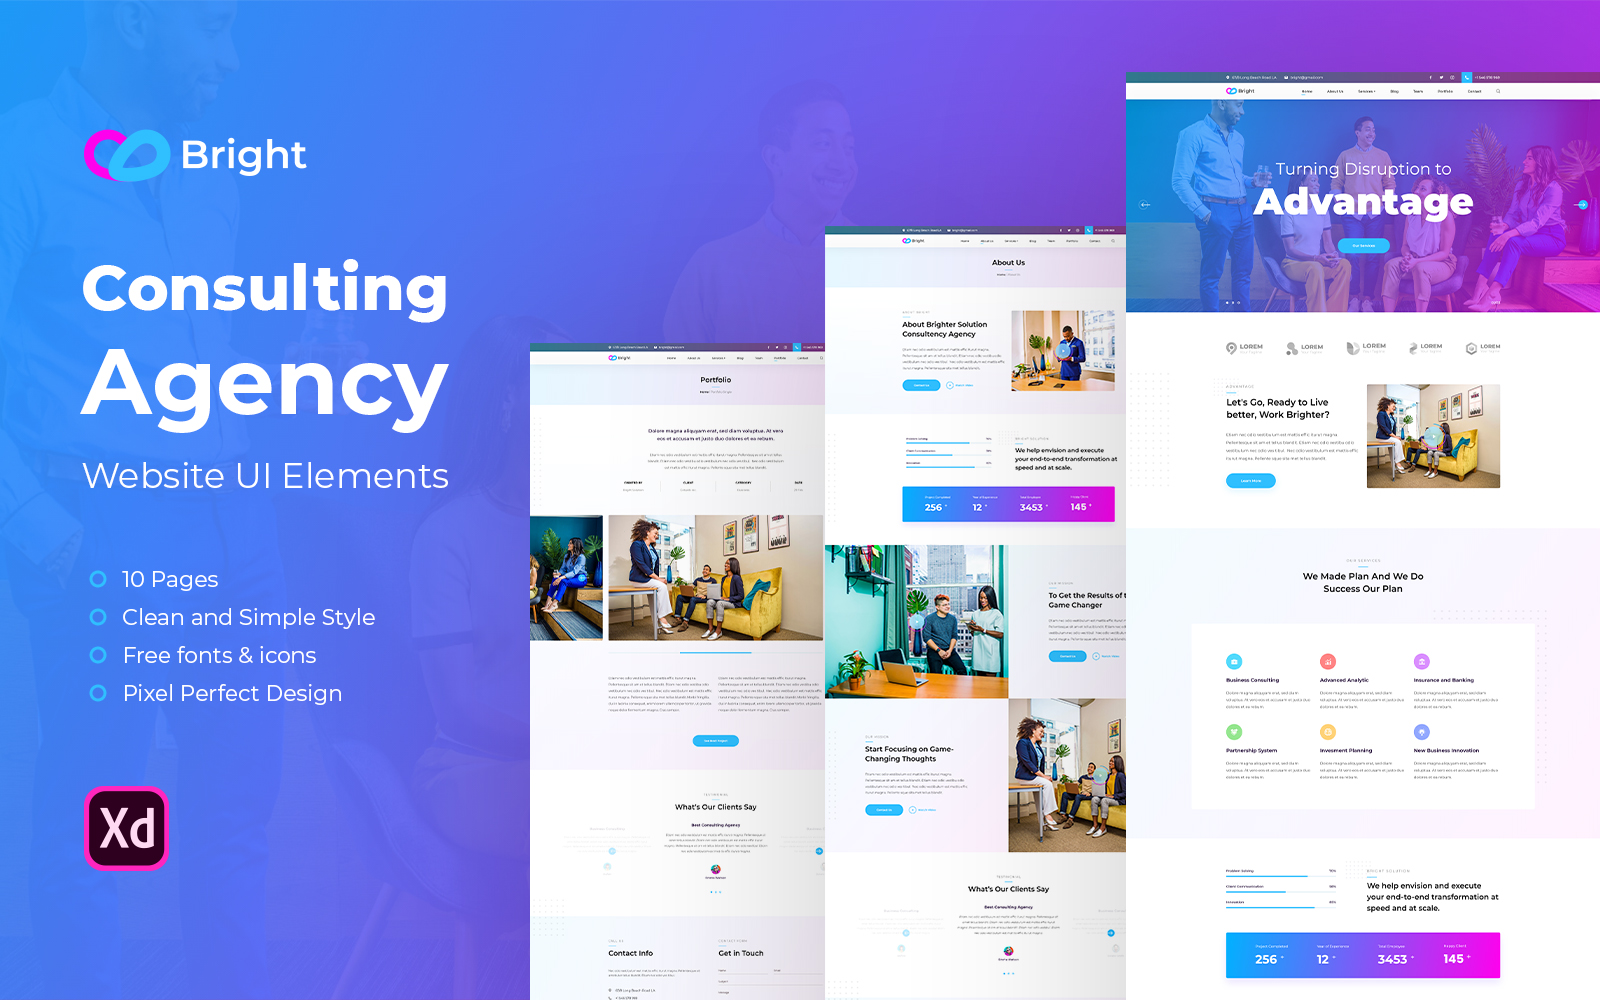 Bright - Consulting Agency Website UI Elements